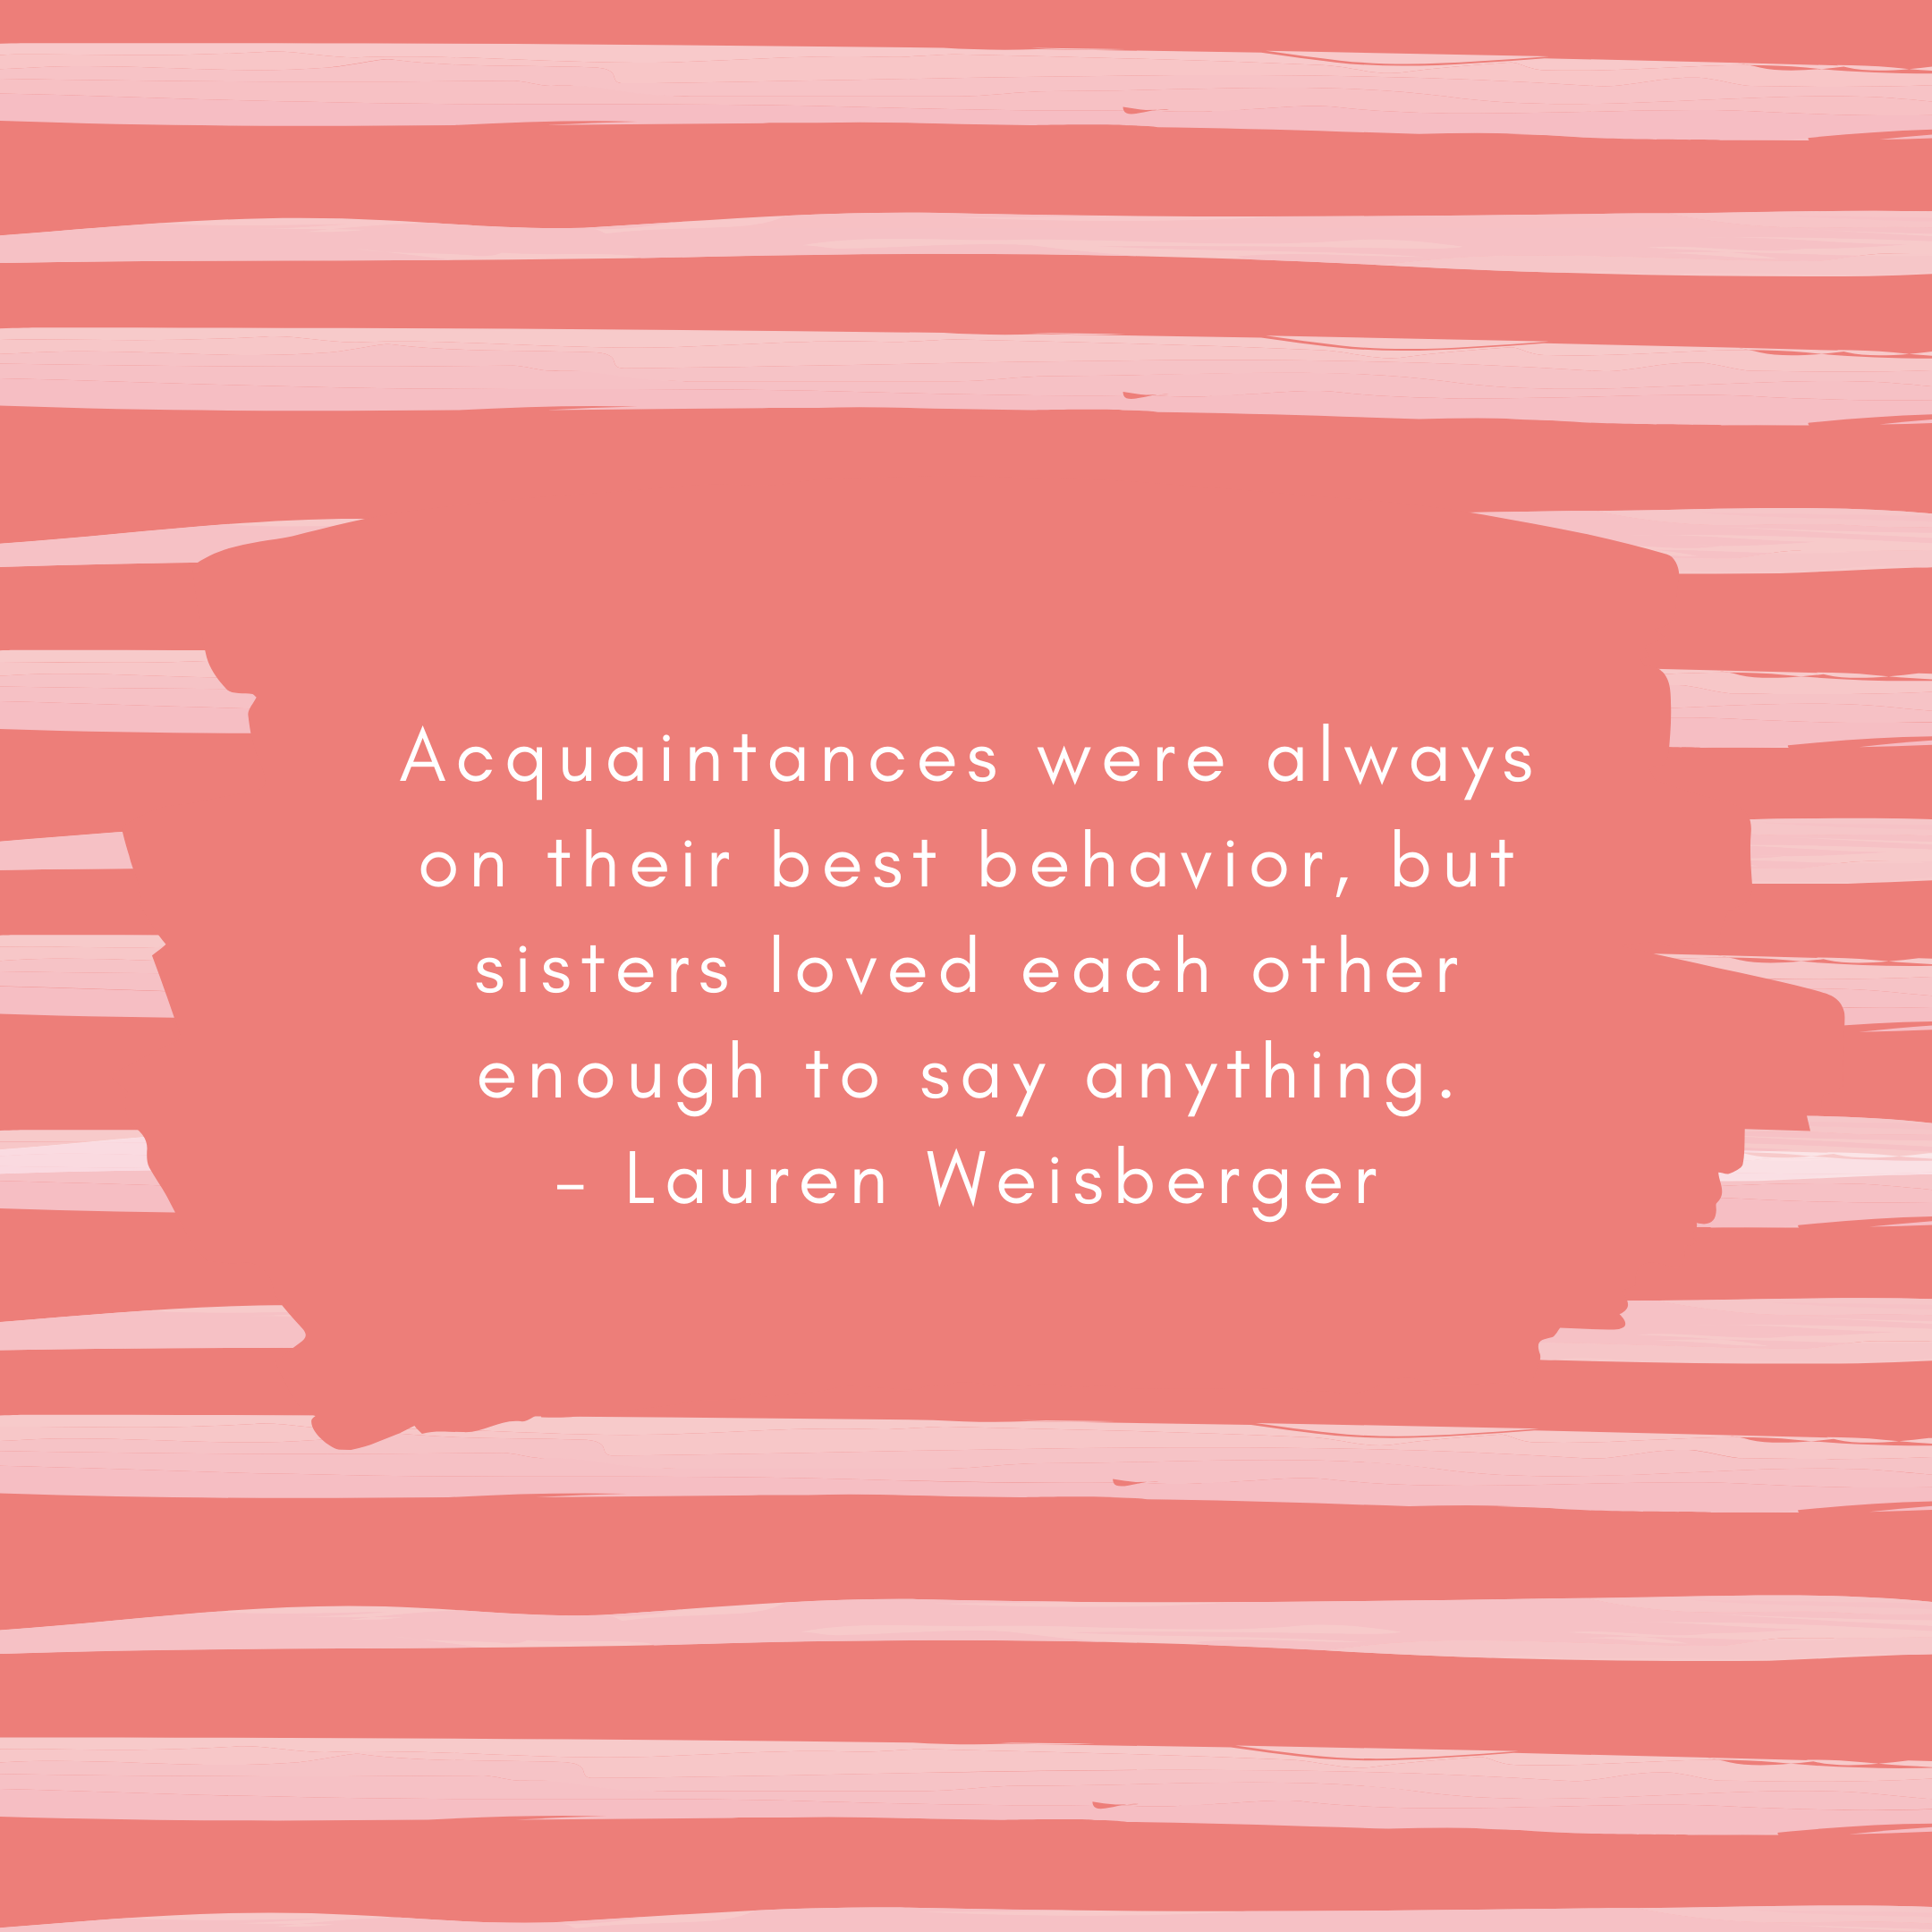 Acquaintances were always on their best behavior, but sisters loved each other enough to say anything. – Lauren Weisberger